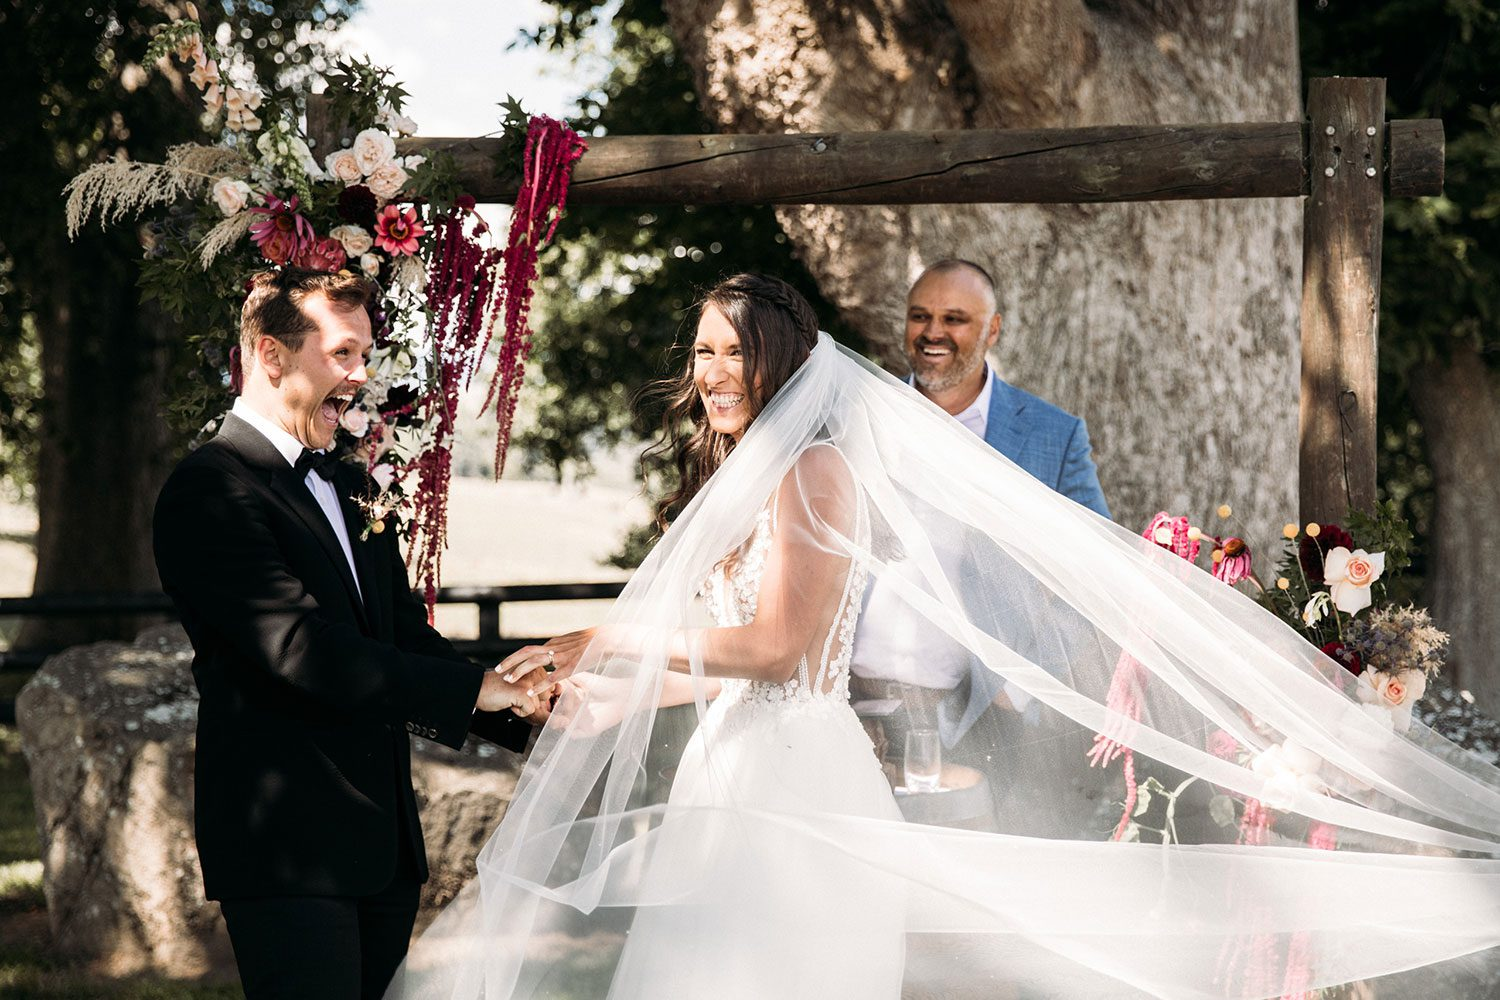 Bride wearing Vinka bridal boutique Isabelle tulle gown with sheer v neck bodice and beaded lace - with groom